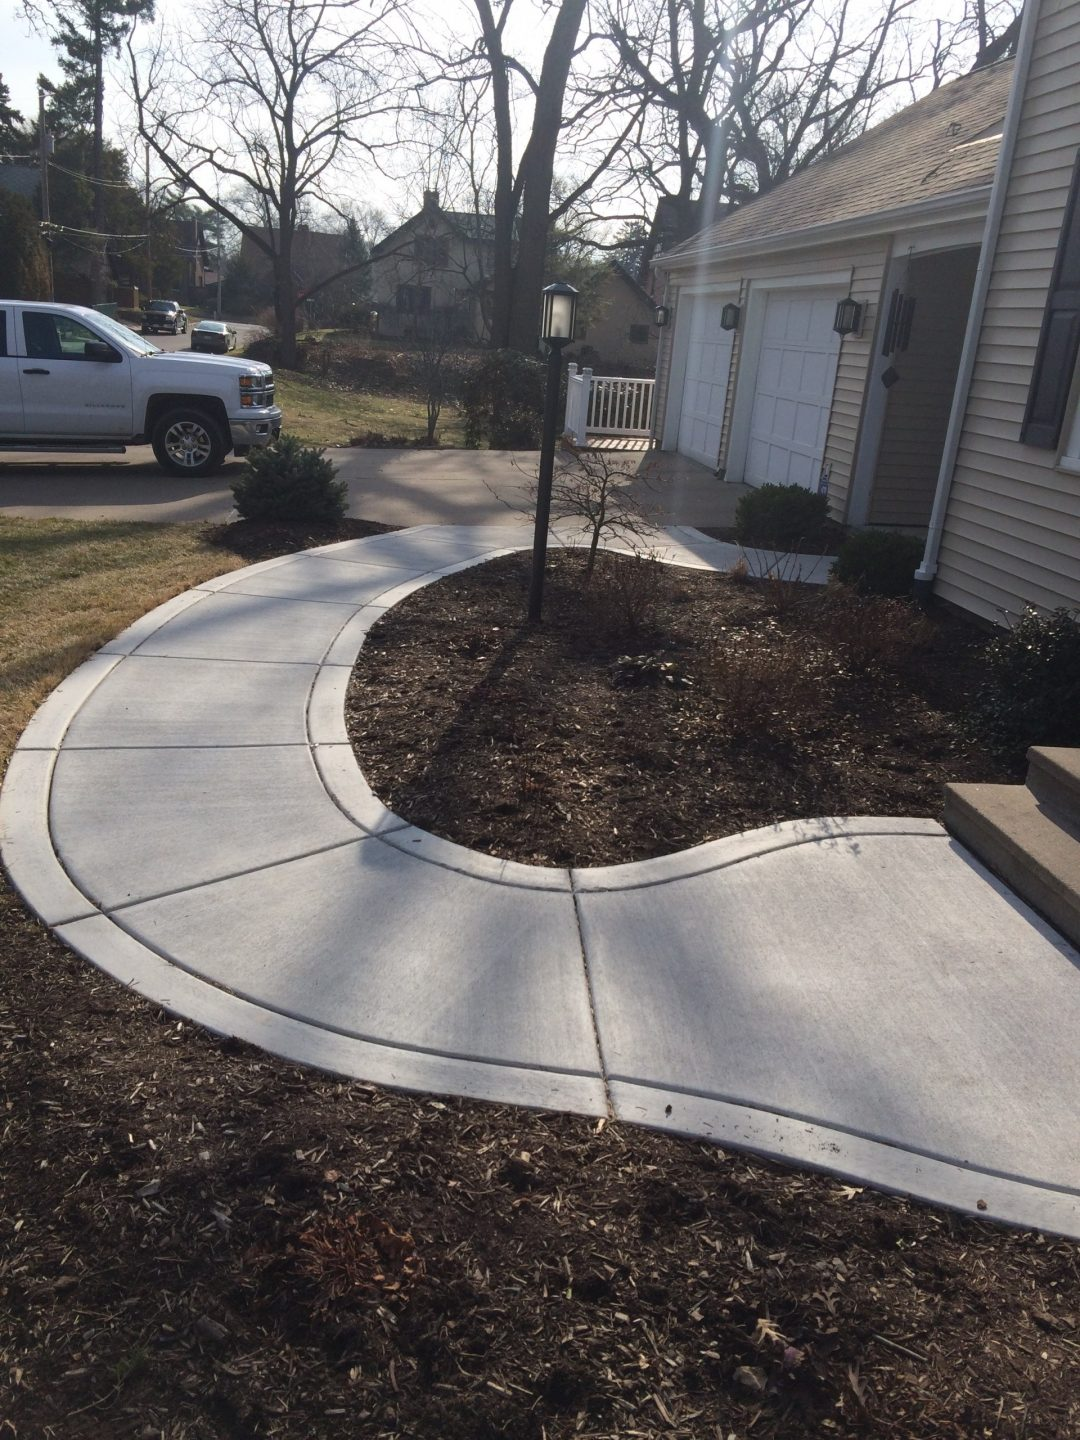 winding entry way sidewalk with a broomed border